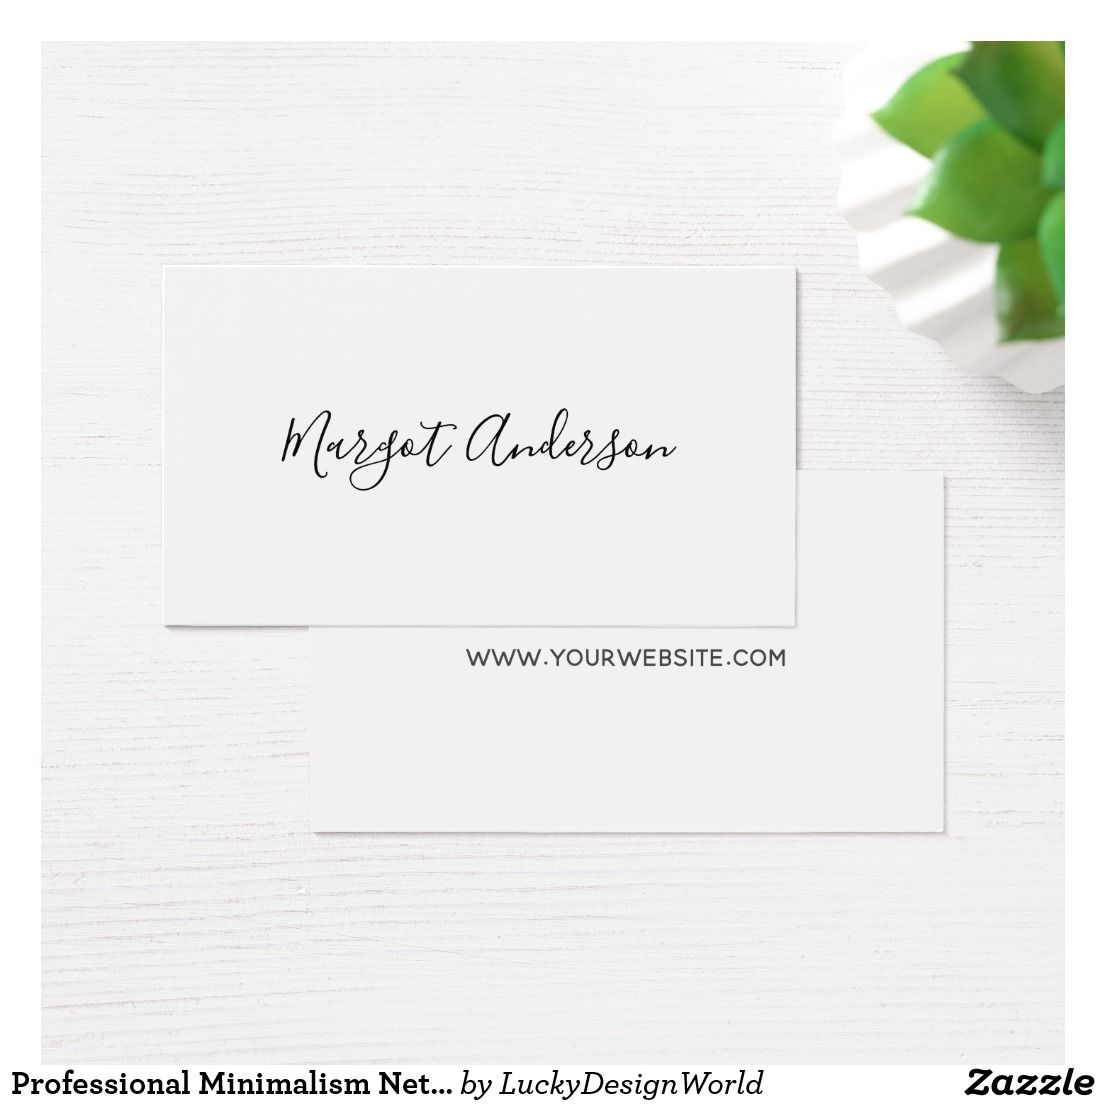 Professional minimalism networking chic business card impressive professional minimalism networking chic business card zazzle reheart Images